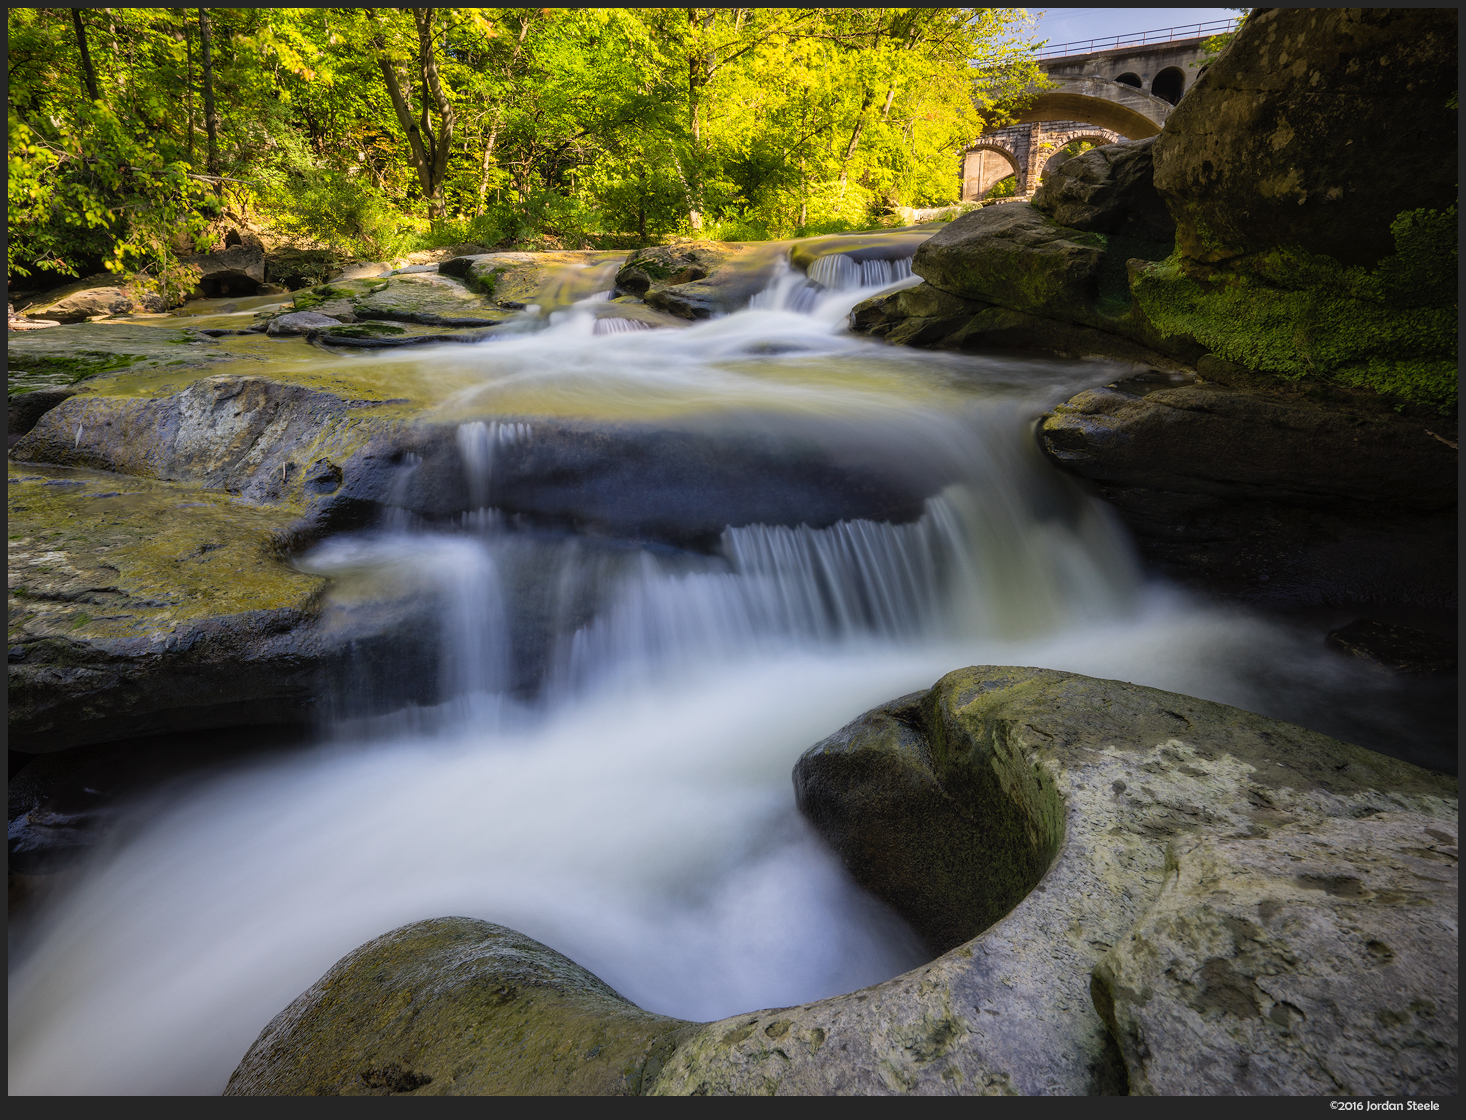 Berea Falls - Sony A7 II with Zeiss FE 16-35mm f/4 ZA OSS @